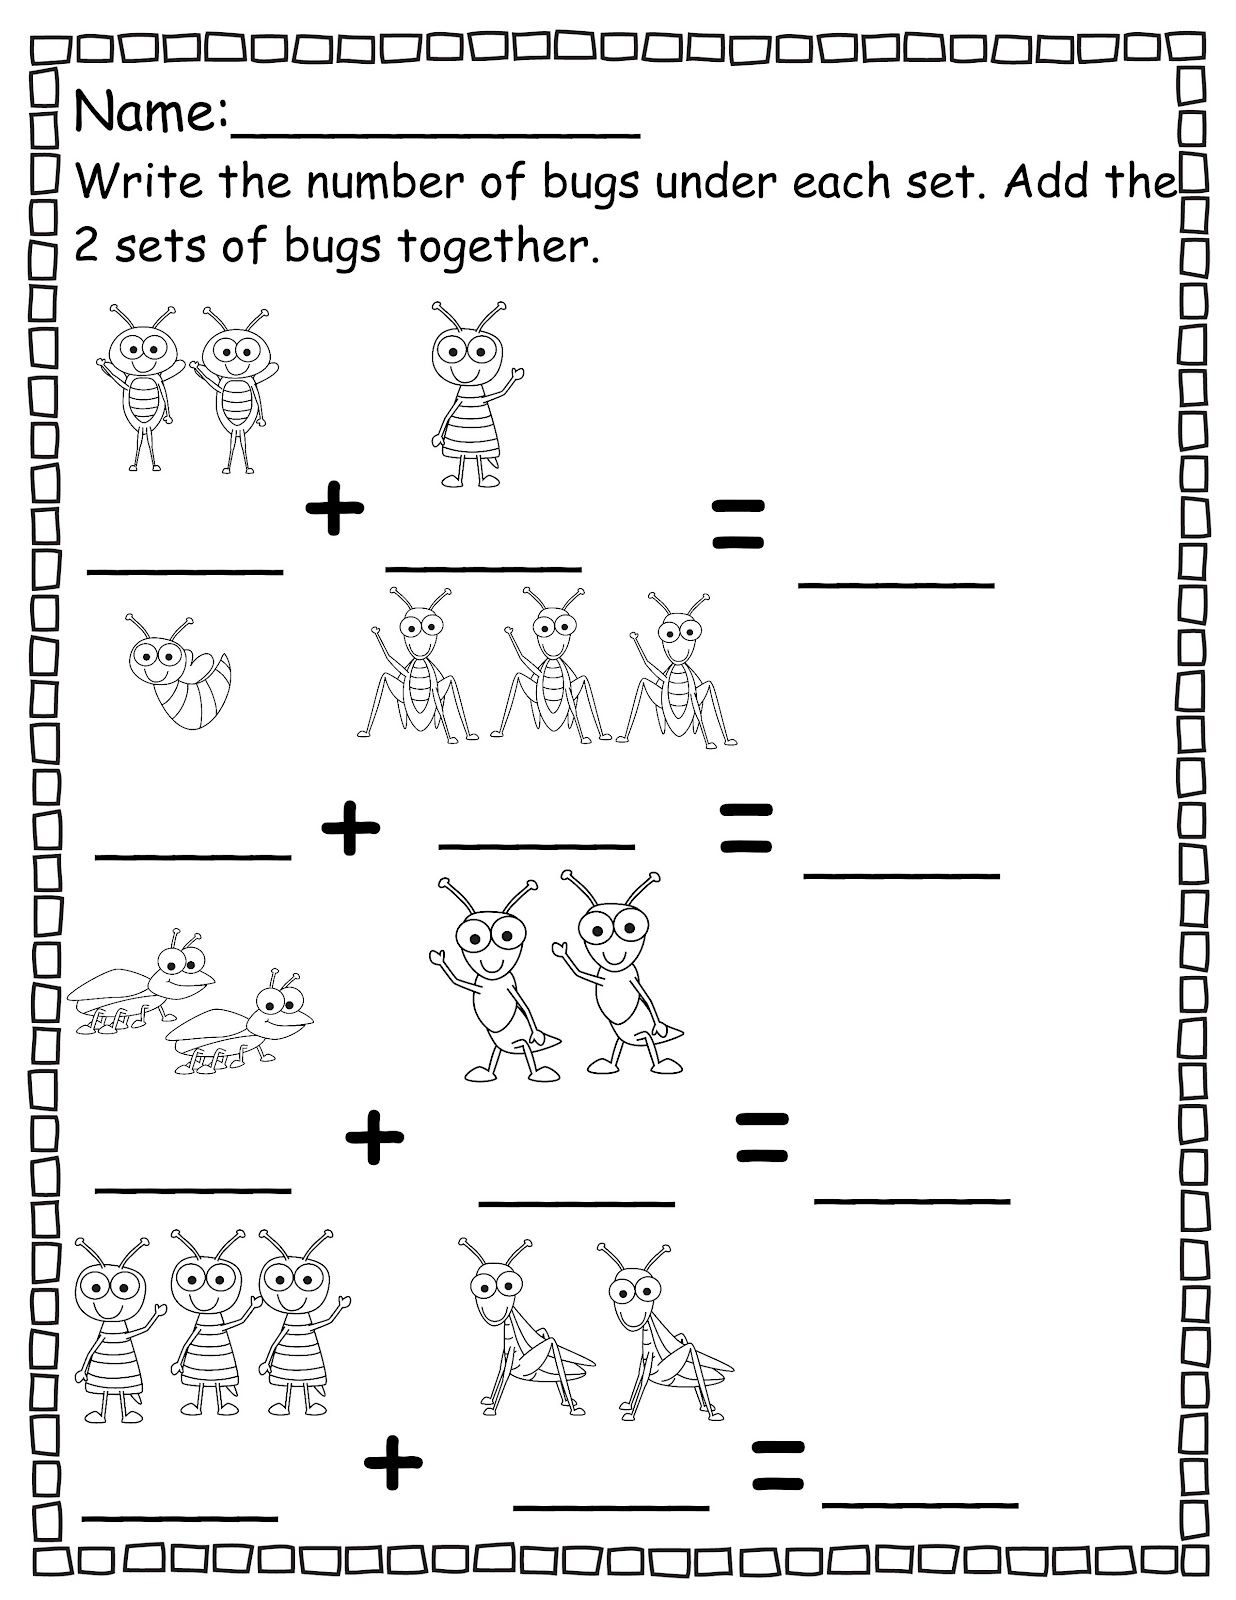 Printables Prek Math Worksheets collection pre k free worksheets photos kaessey for school kaessey